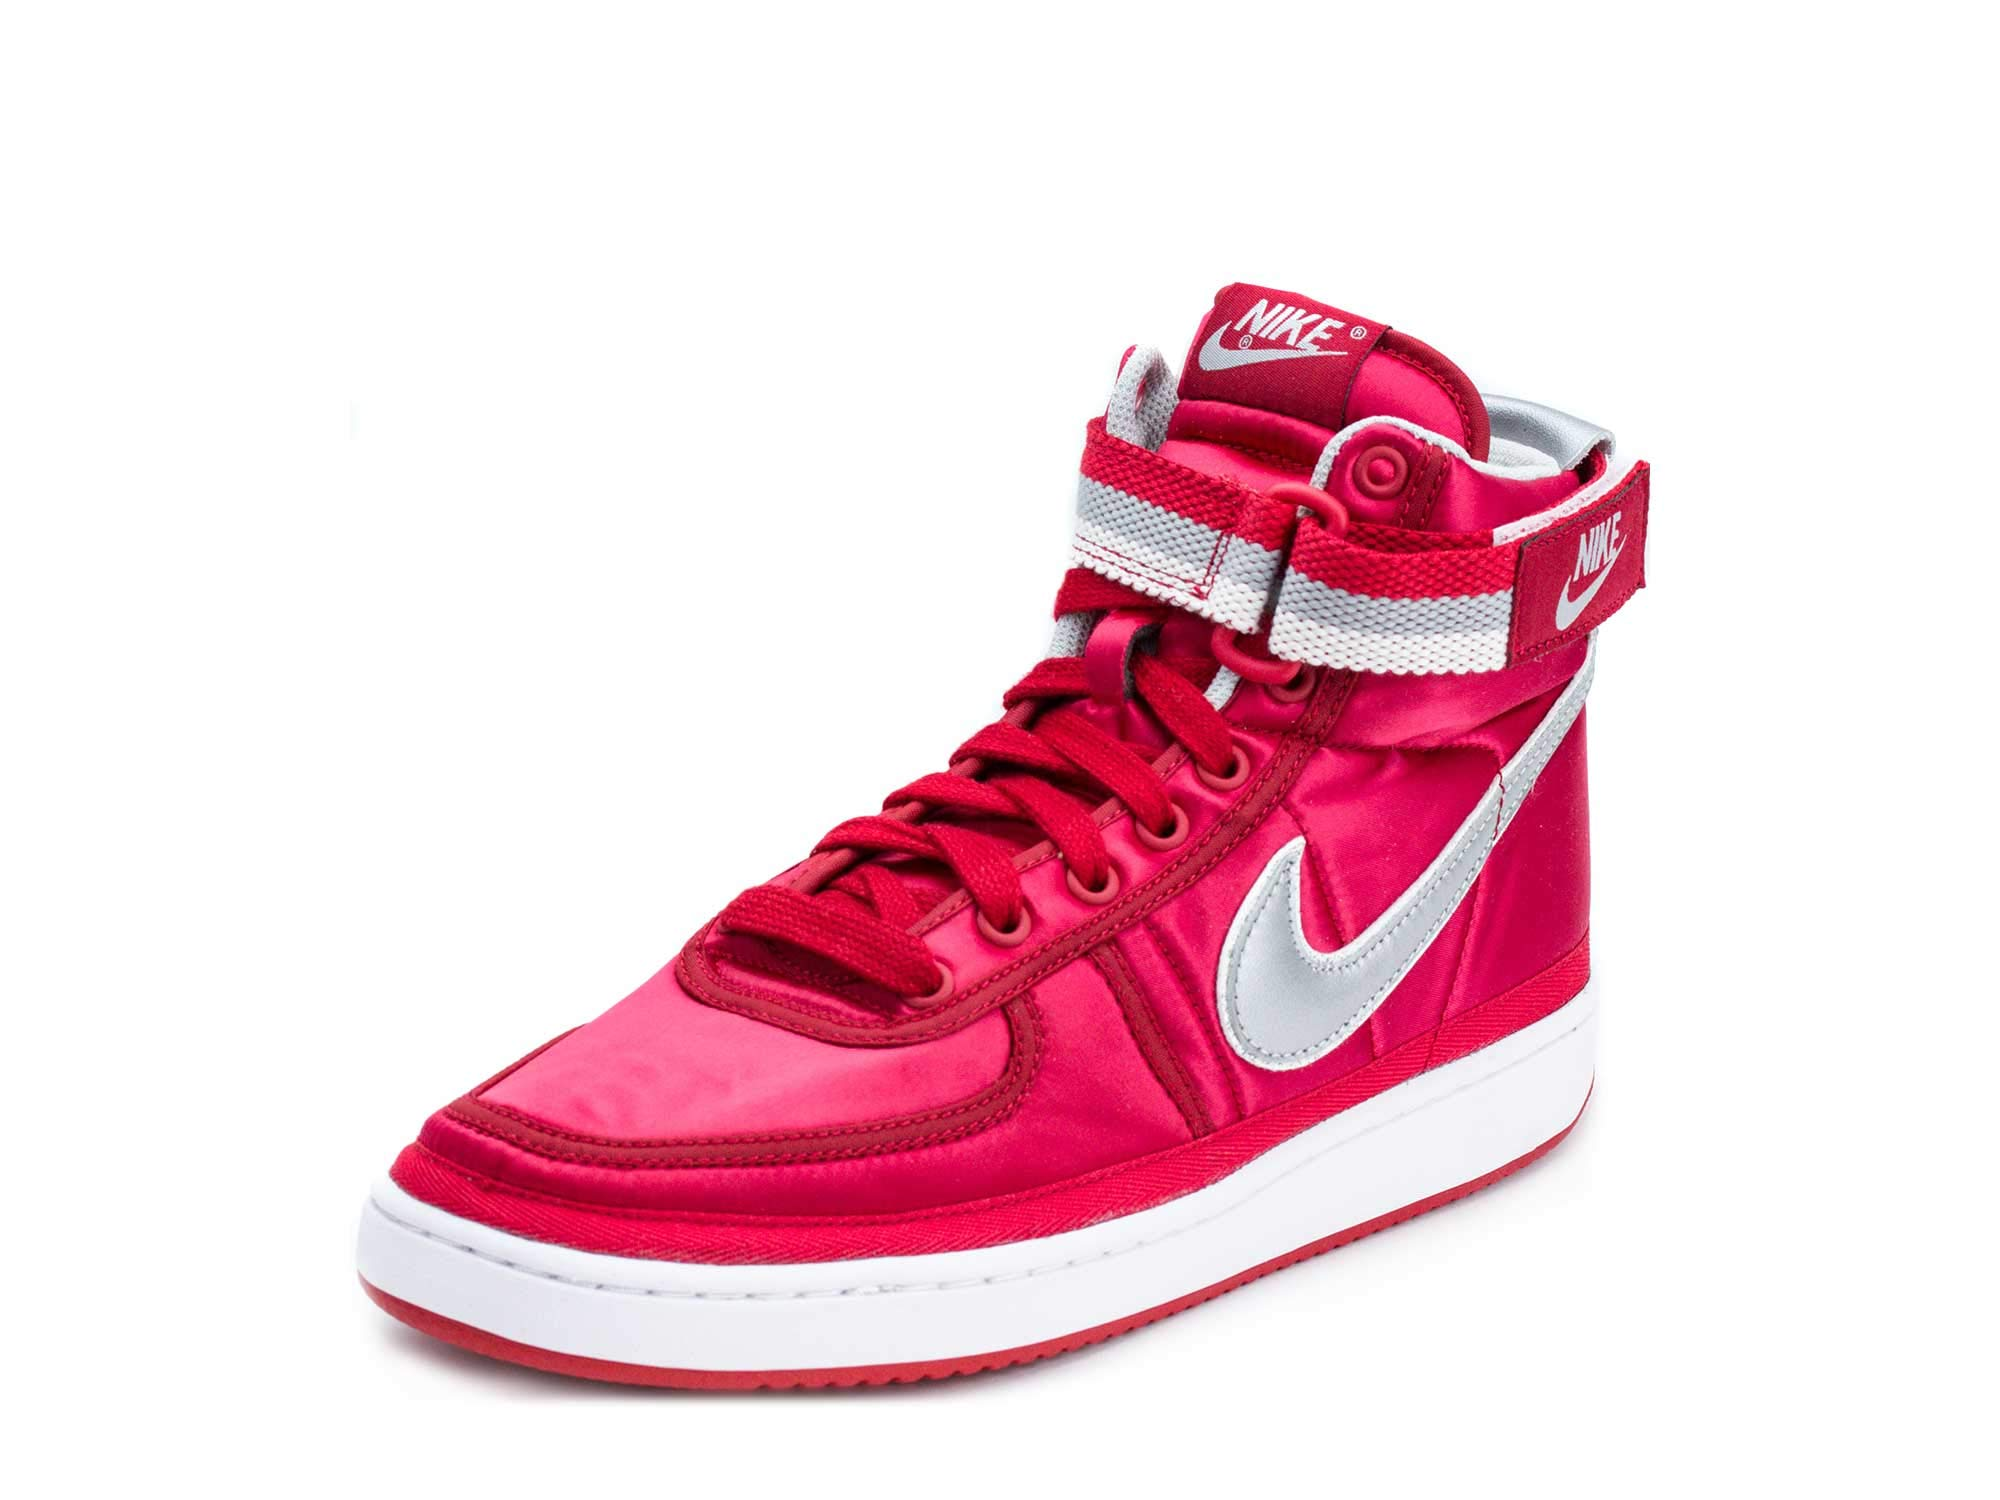 e5d32e8b9 Galleon - NIKE Vandal High Supreme QS